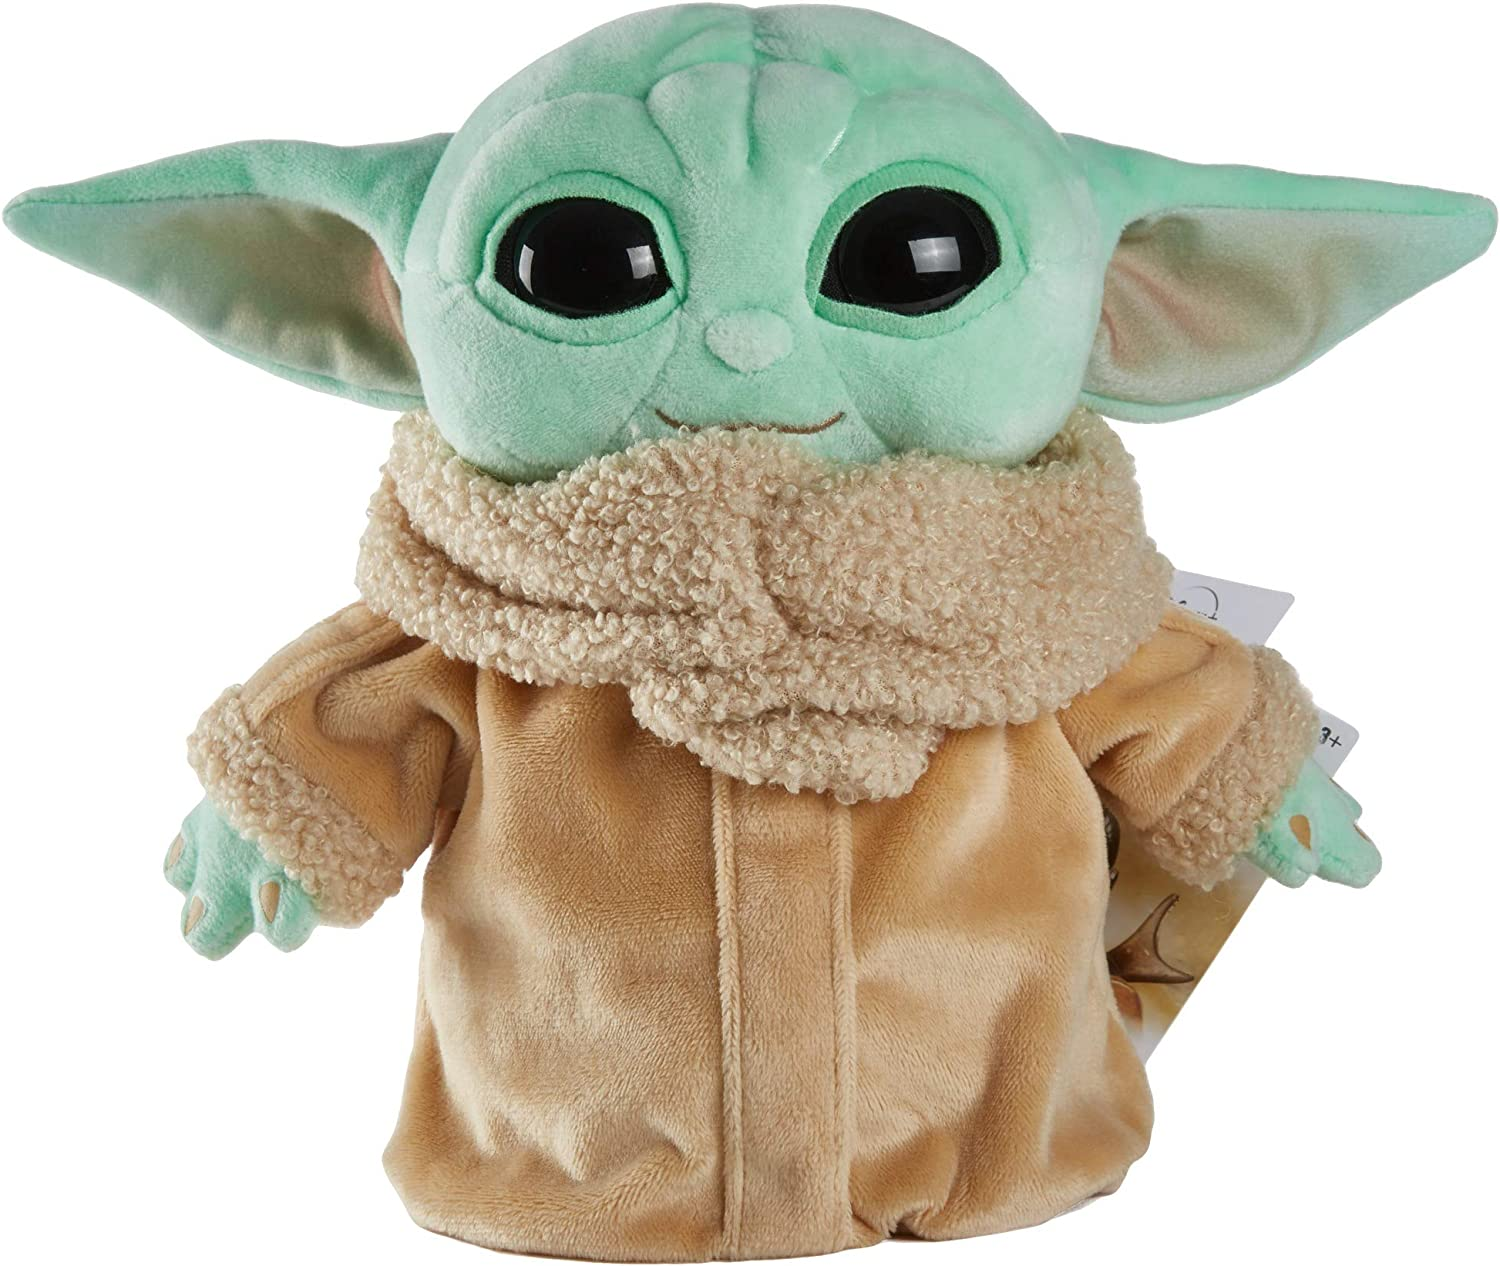 Star Wars The Mandalorian Baby Yoda Plush 30 cm